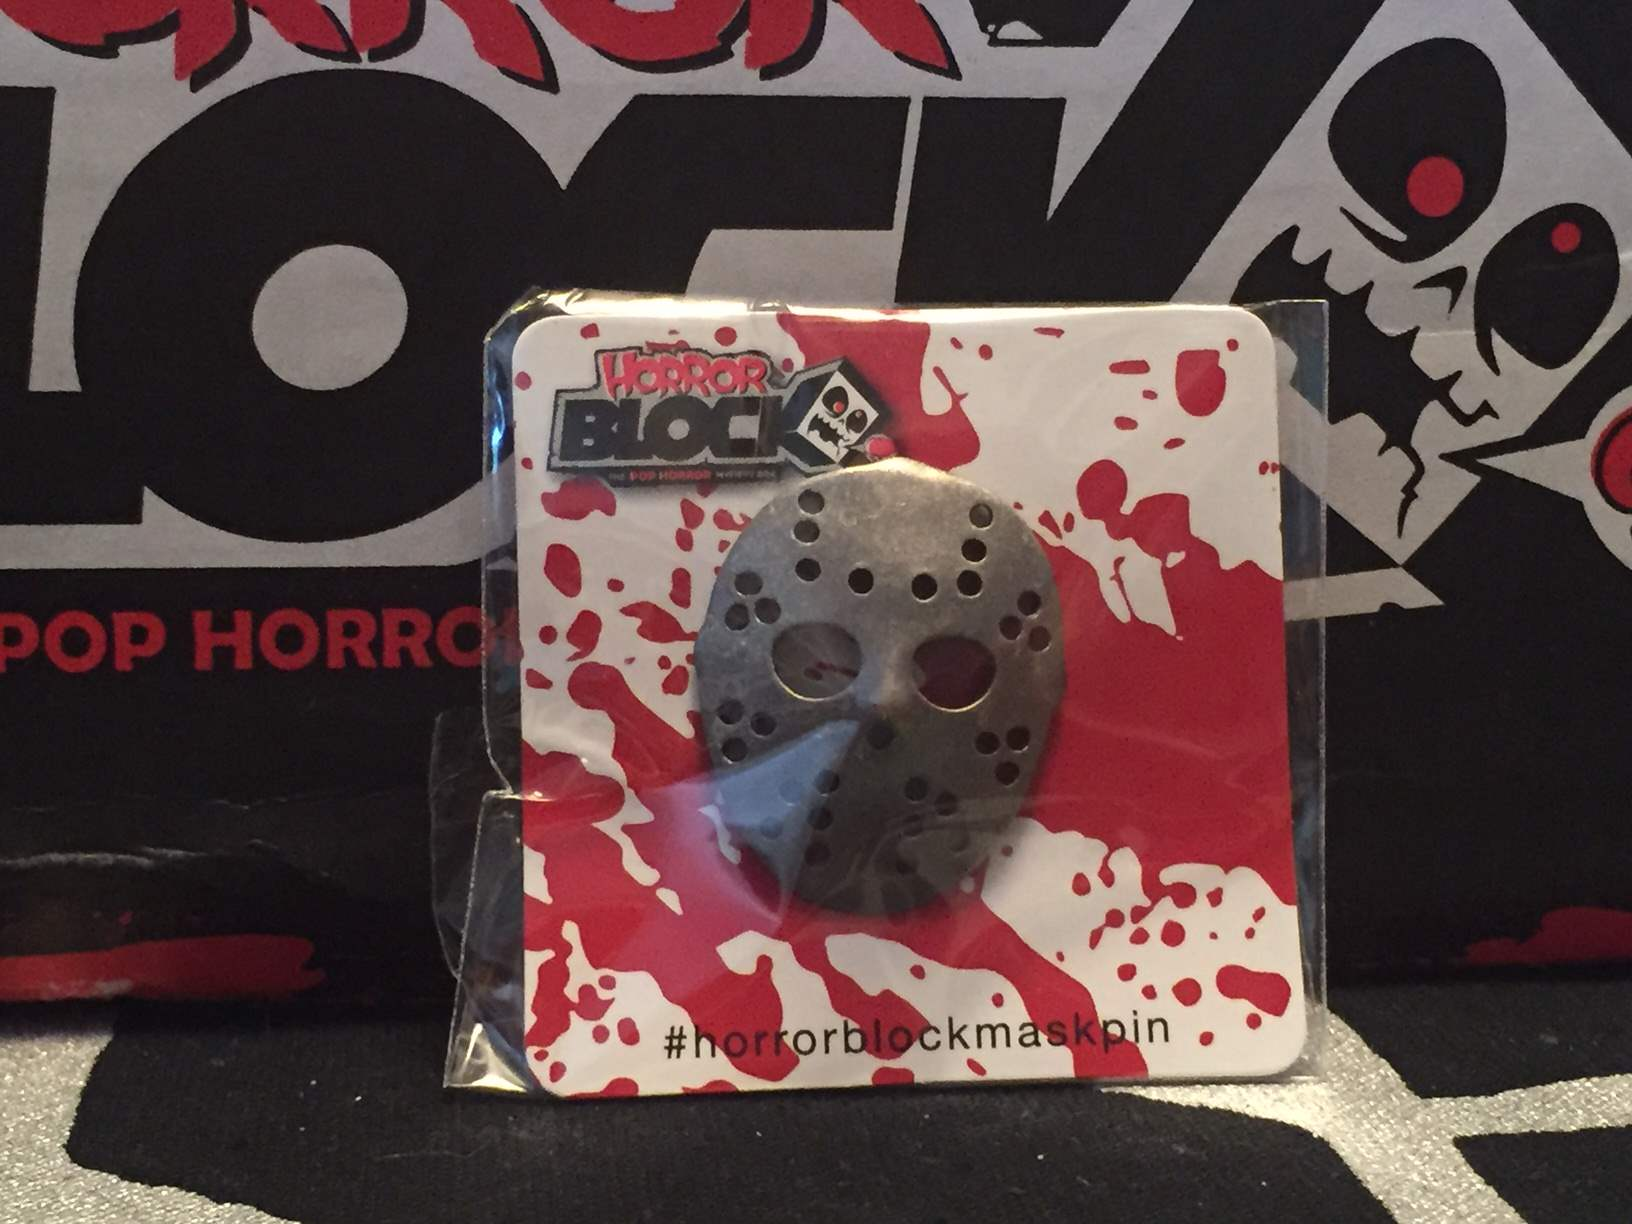 A silver hockey mask pin in the May 2016 Horror Block